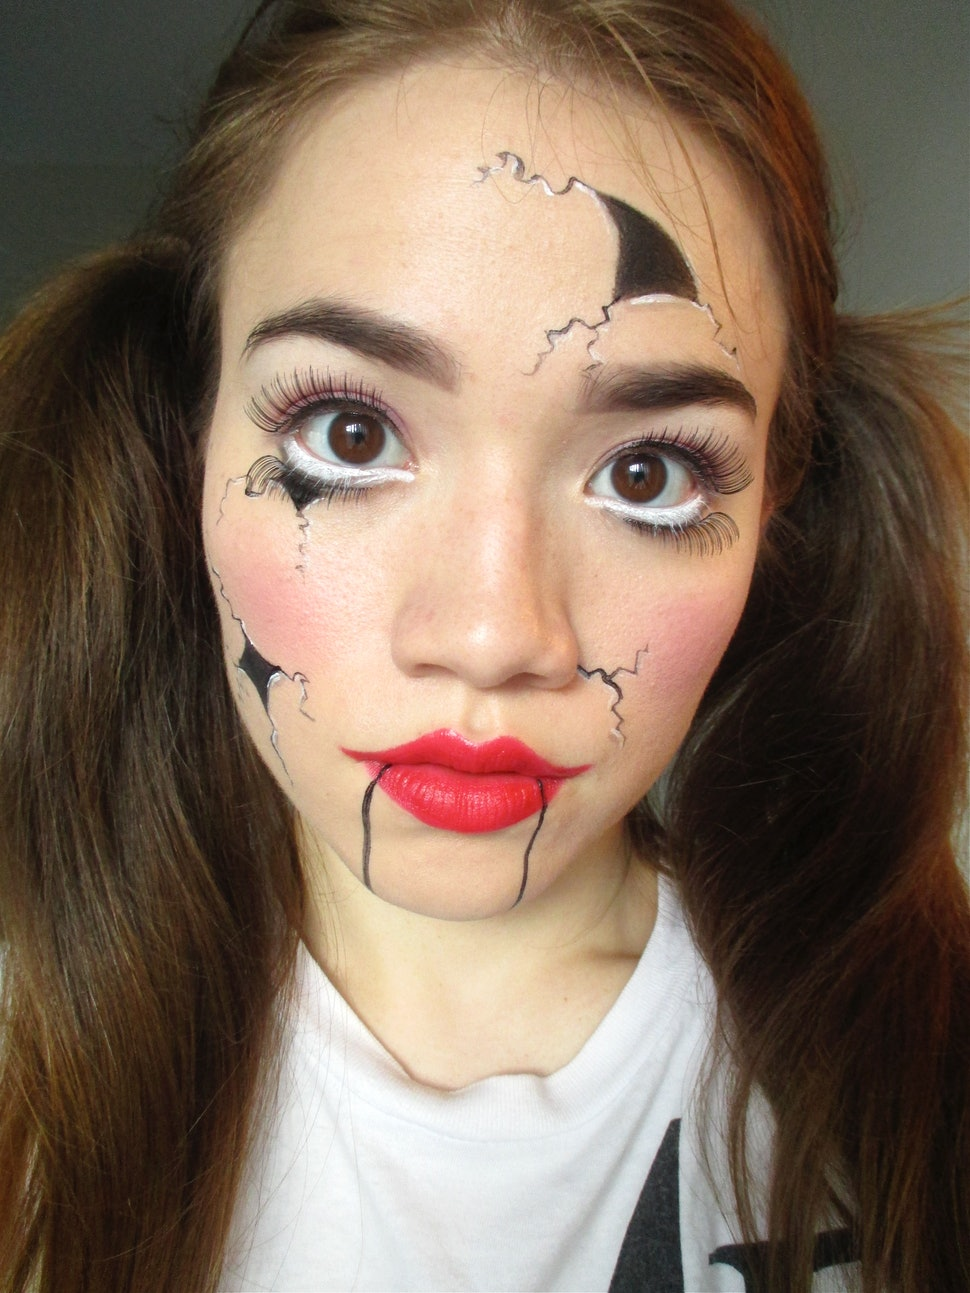 This Easy Broken Doll Makeup Uses Products You Already Own ...